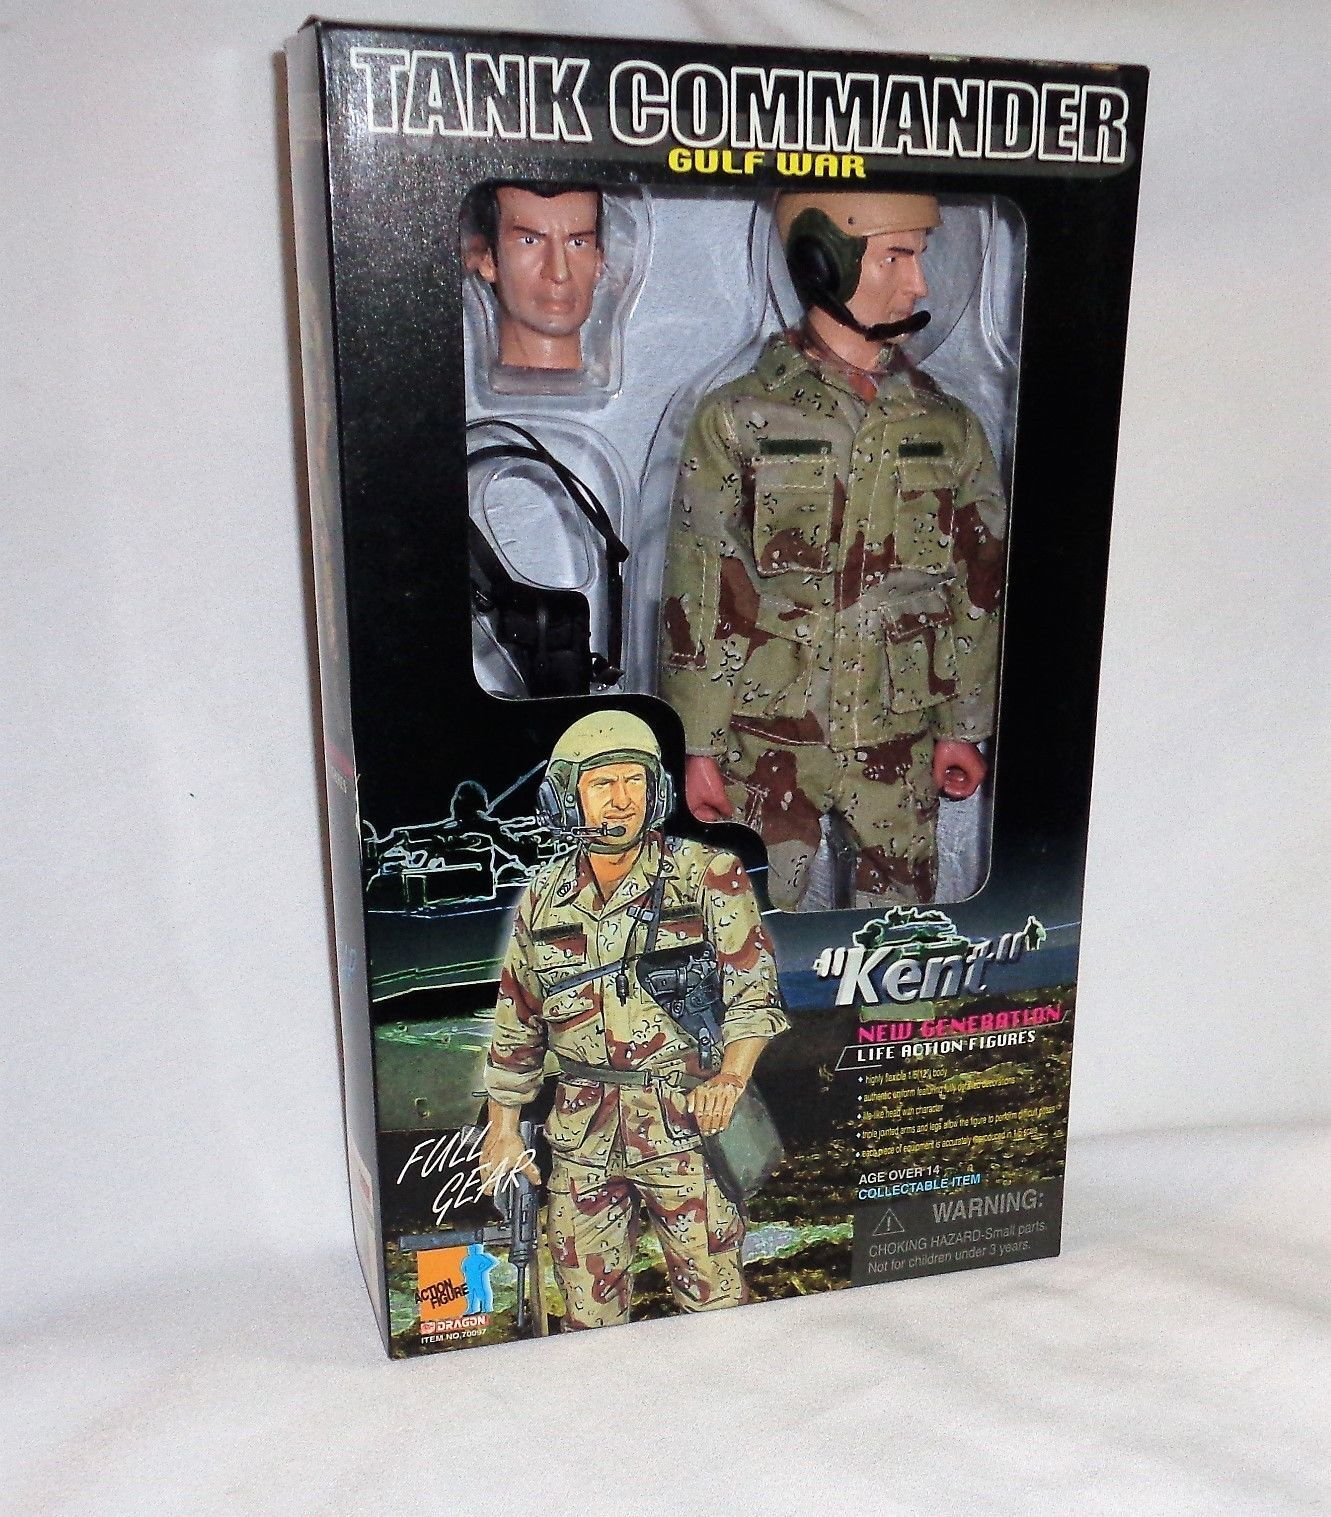 Dragon US Tank Commander Kent Gulf War Iraq 12 Inch 1/6 Scale Doll Figure Boxed